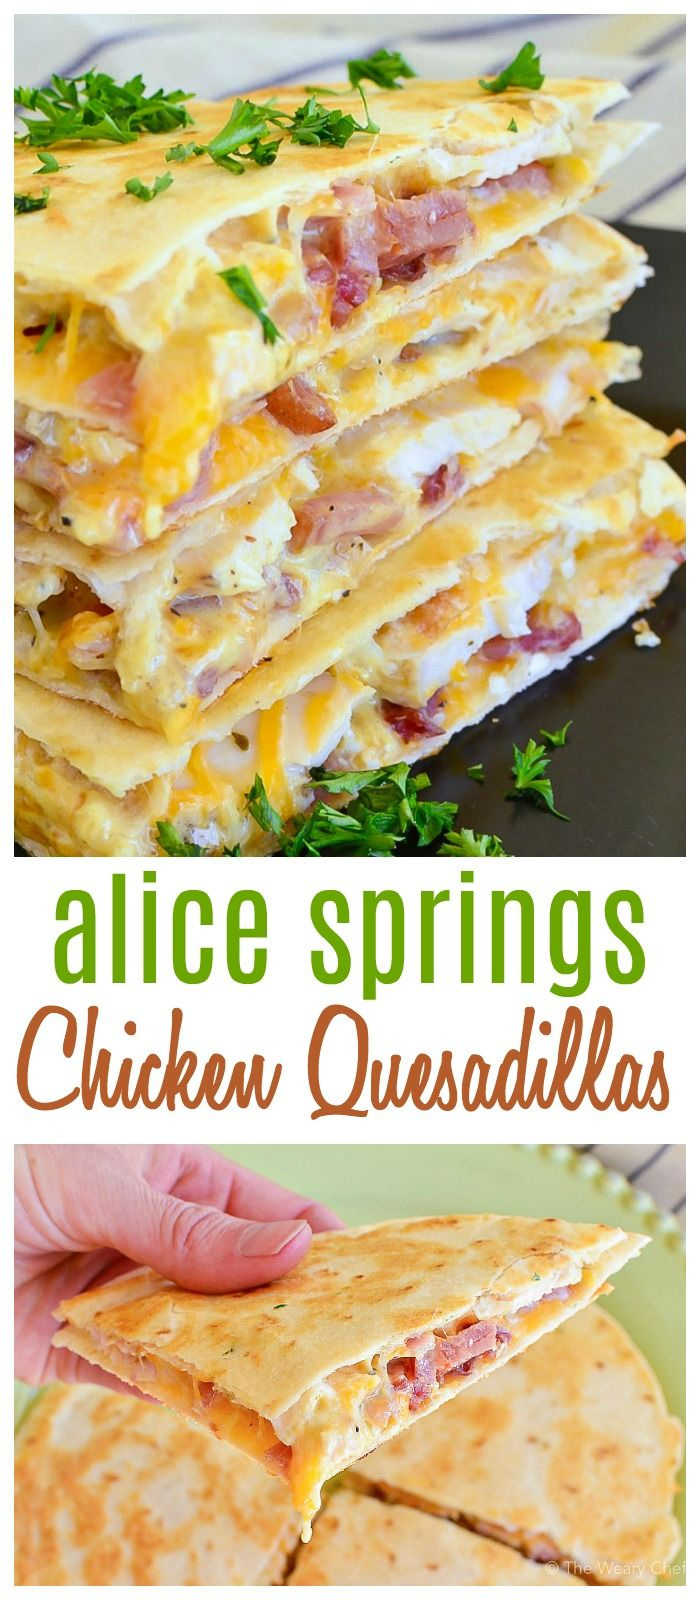 Alice Springs Chicken Quesadillas have so many of my favorite foods wrapped up in one bite: Bacon, grilled chicken, cheese, and honey mustard! This just might become you new go-to quesadilla this summer! #chicken #quesadilla #honeymustard